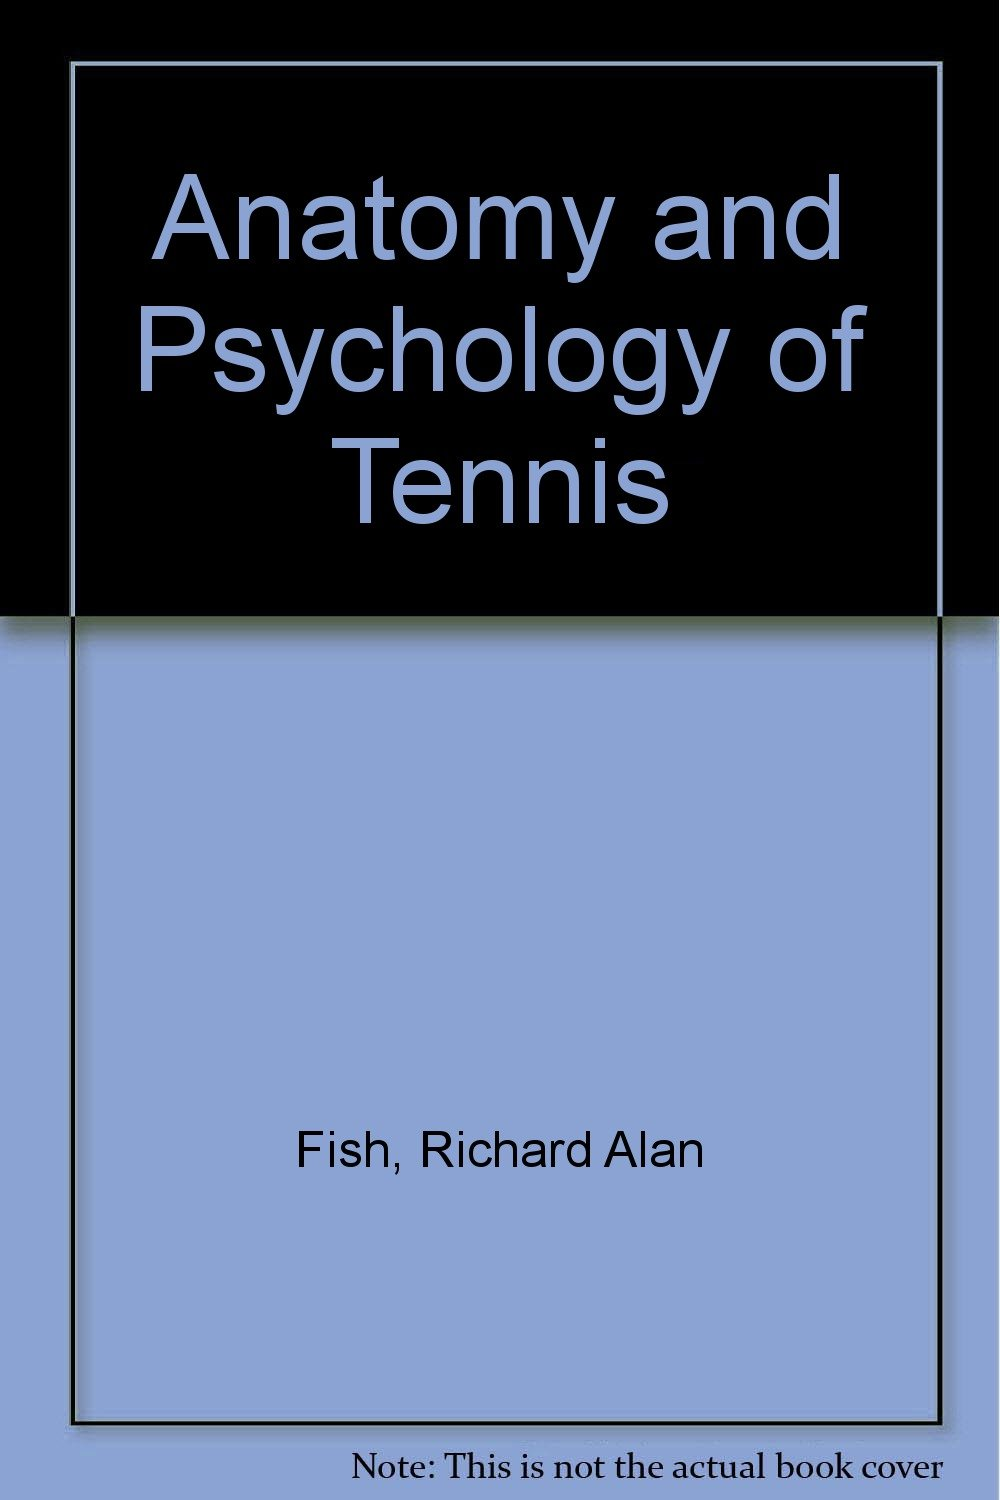 Amazon Buy Anatomy And Psychology Of Tennis Book Online At Low